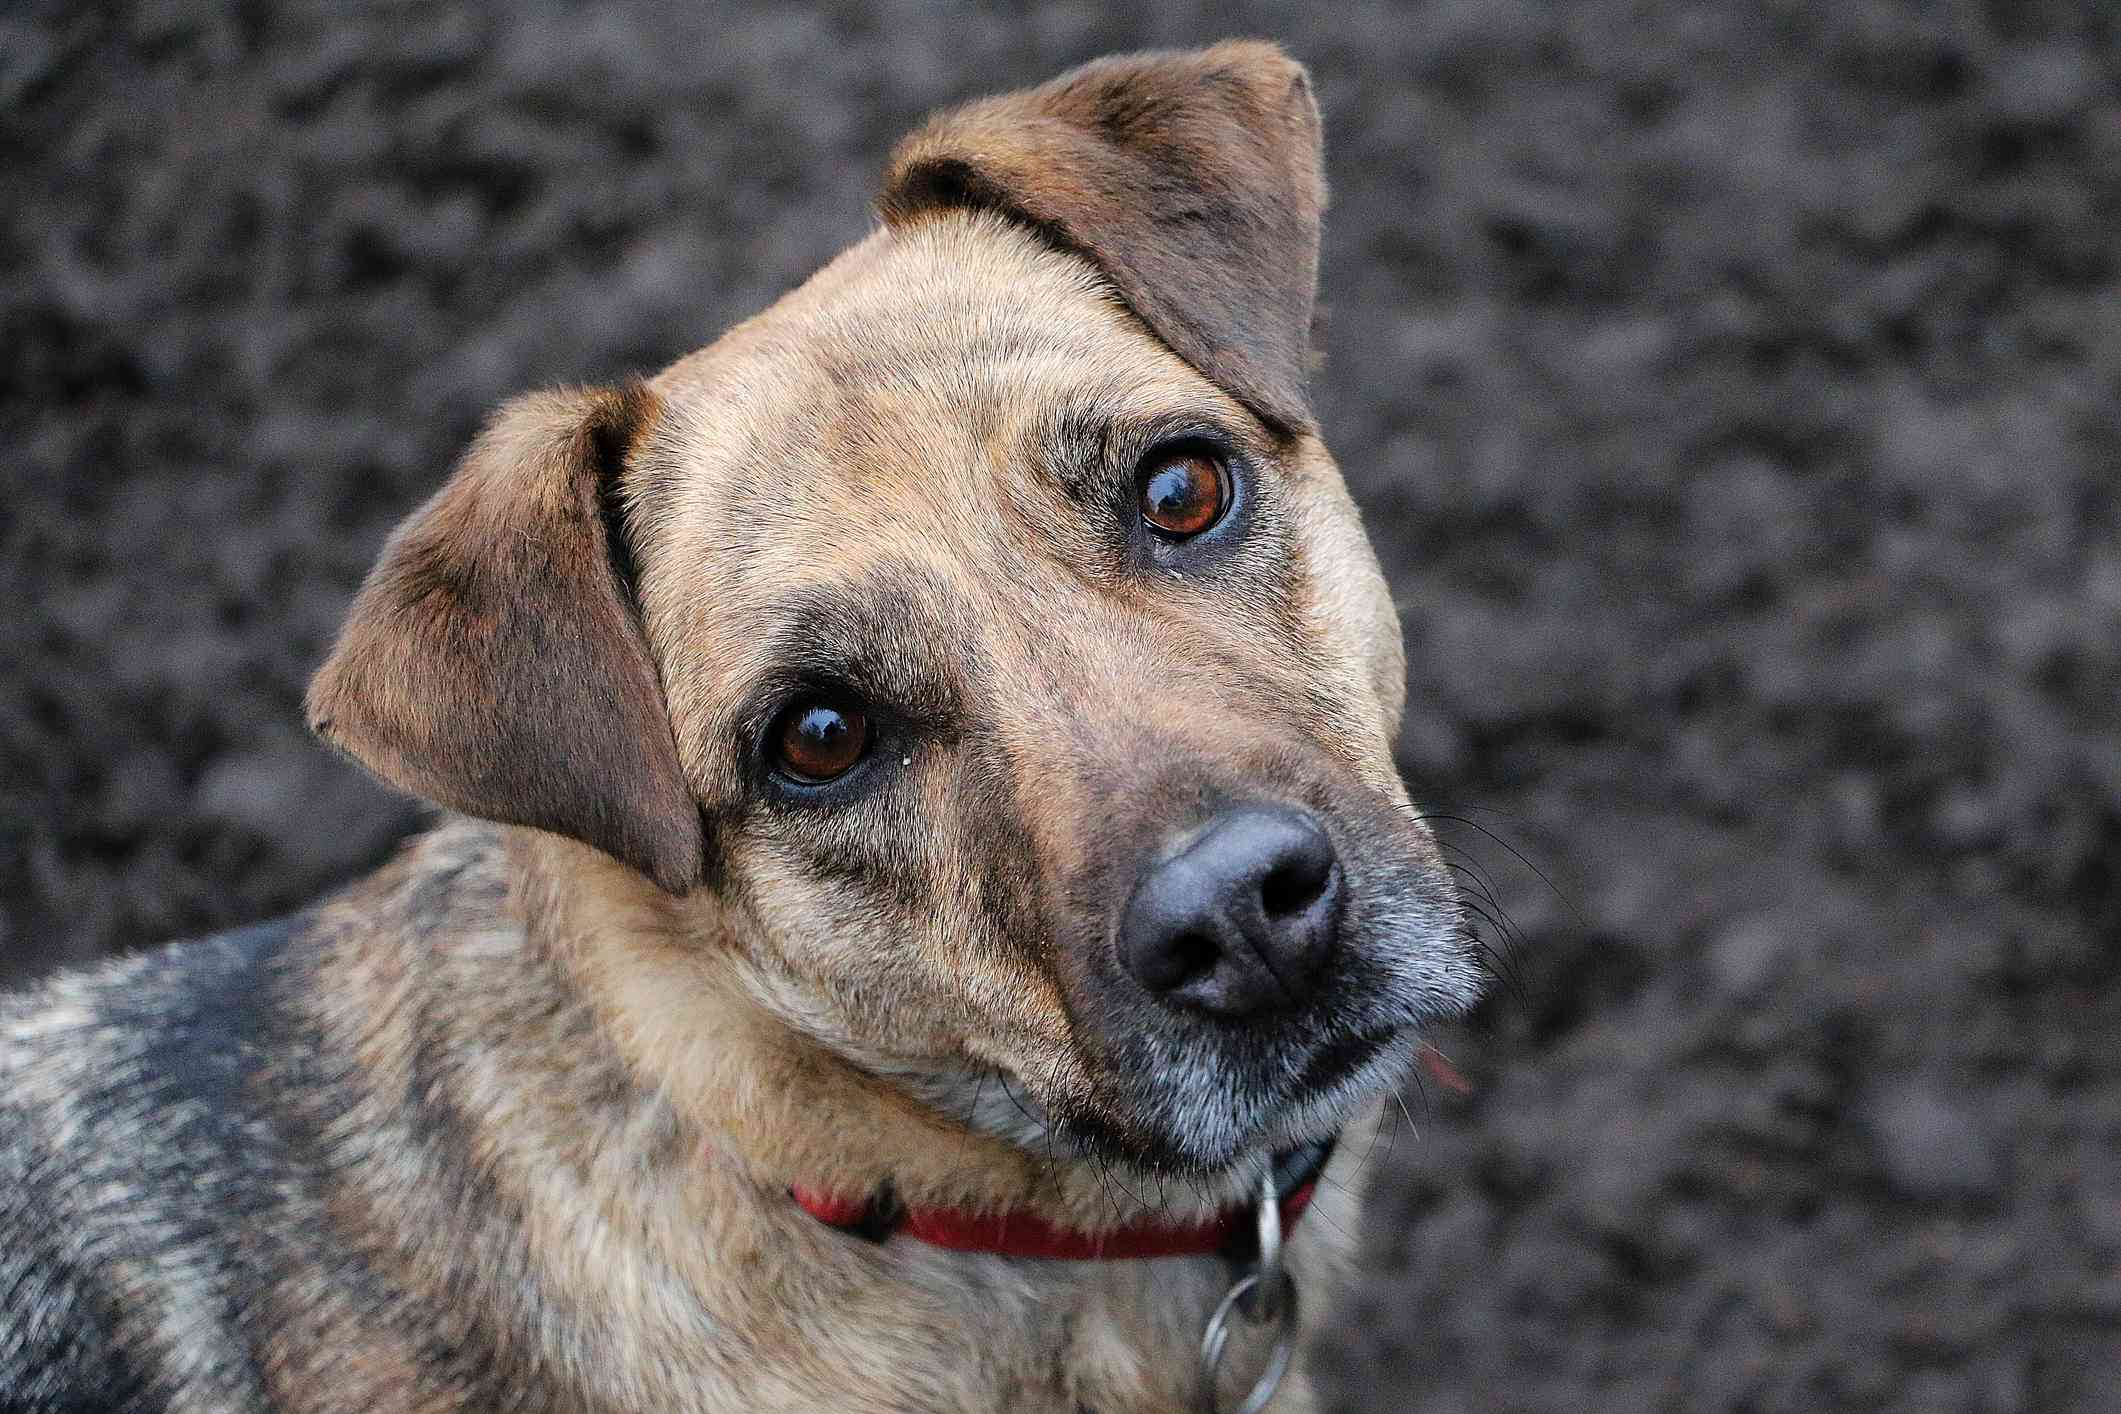 A mutt tilts its head against a muddy background.